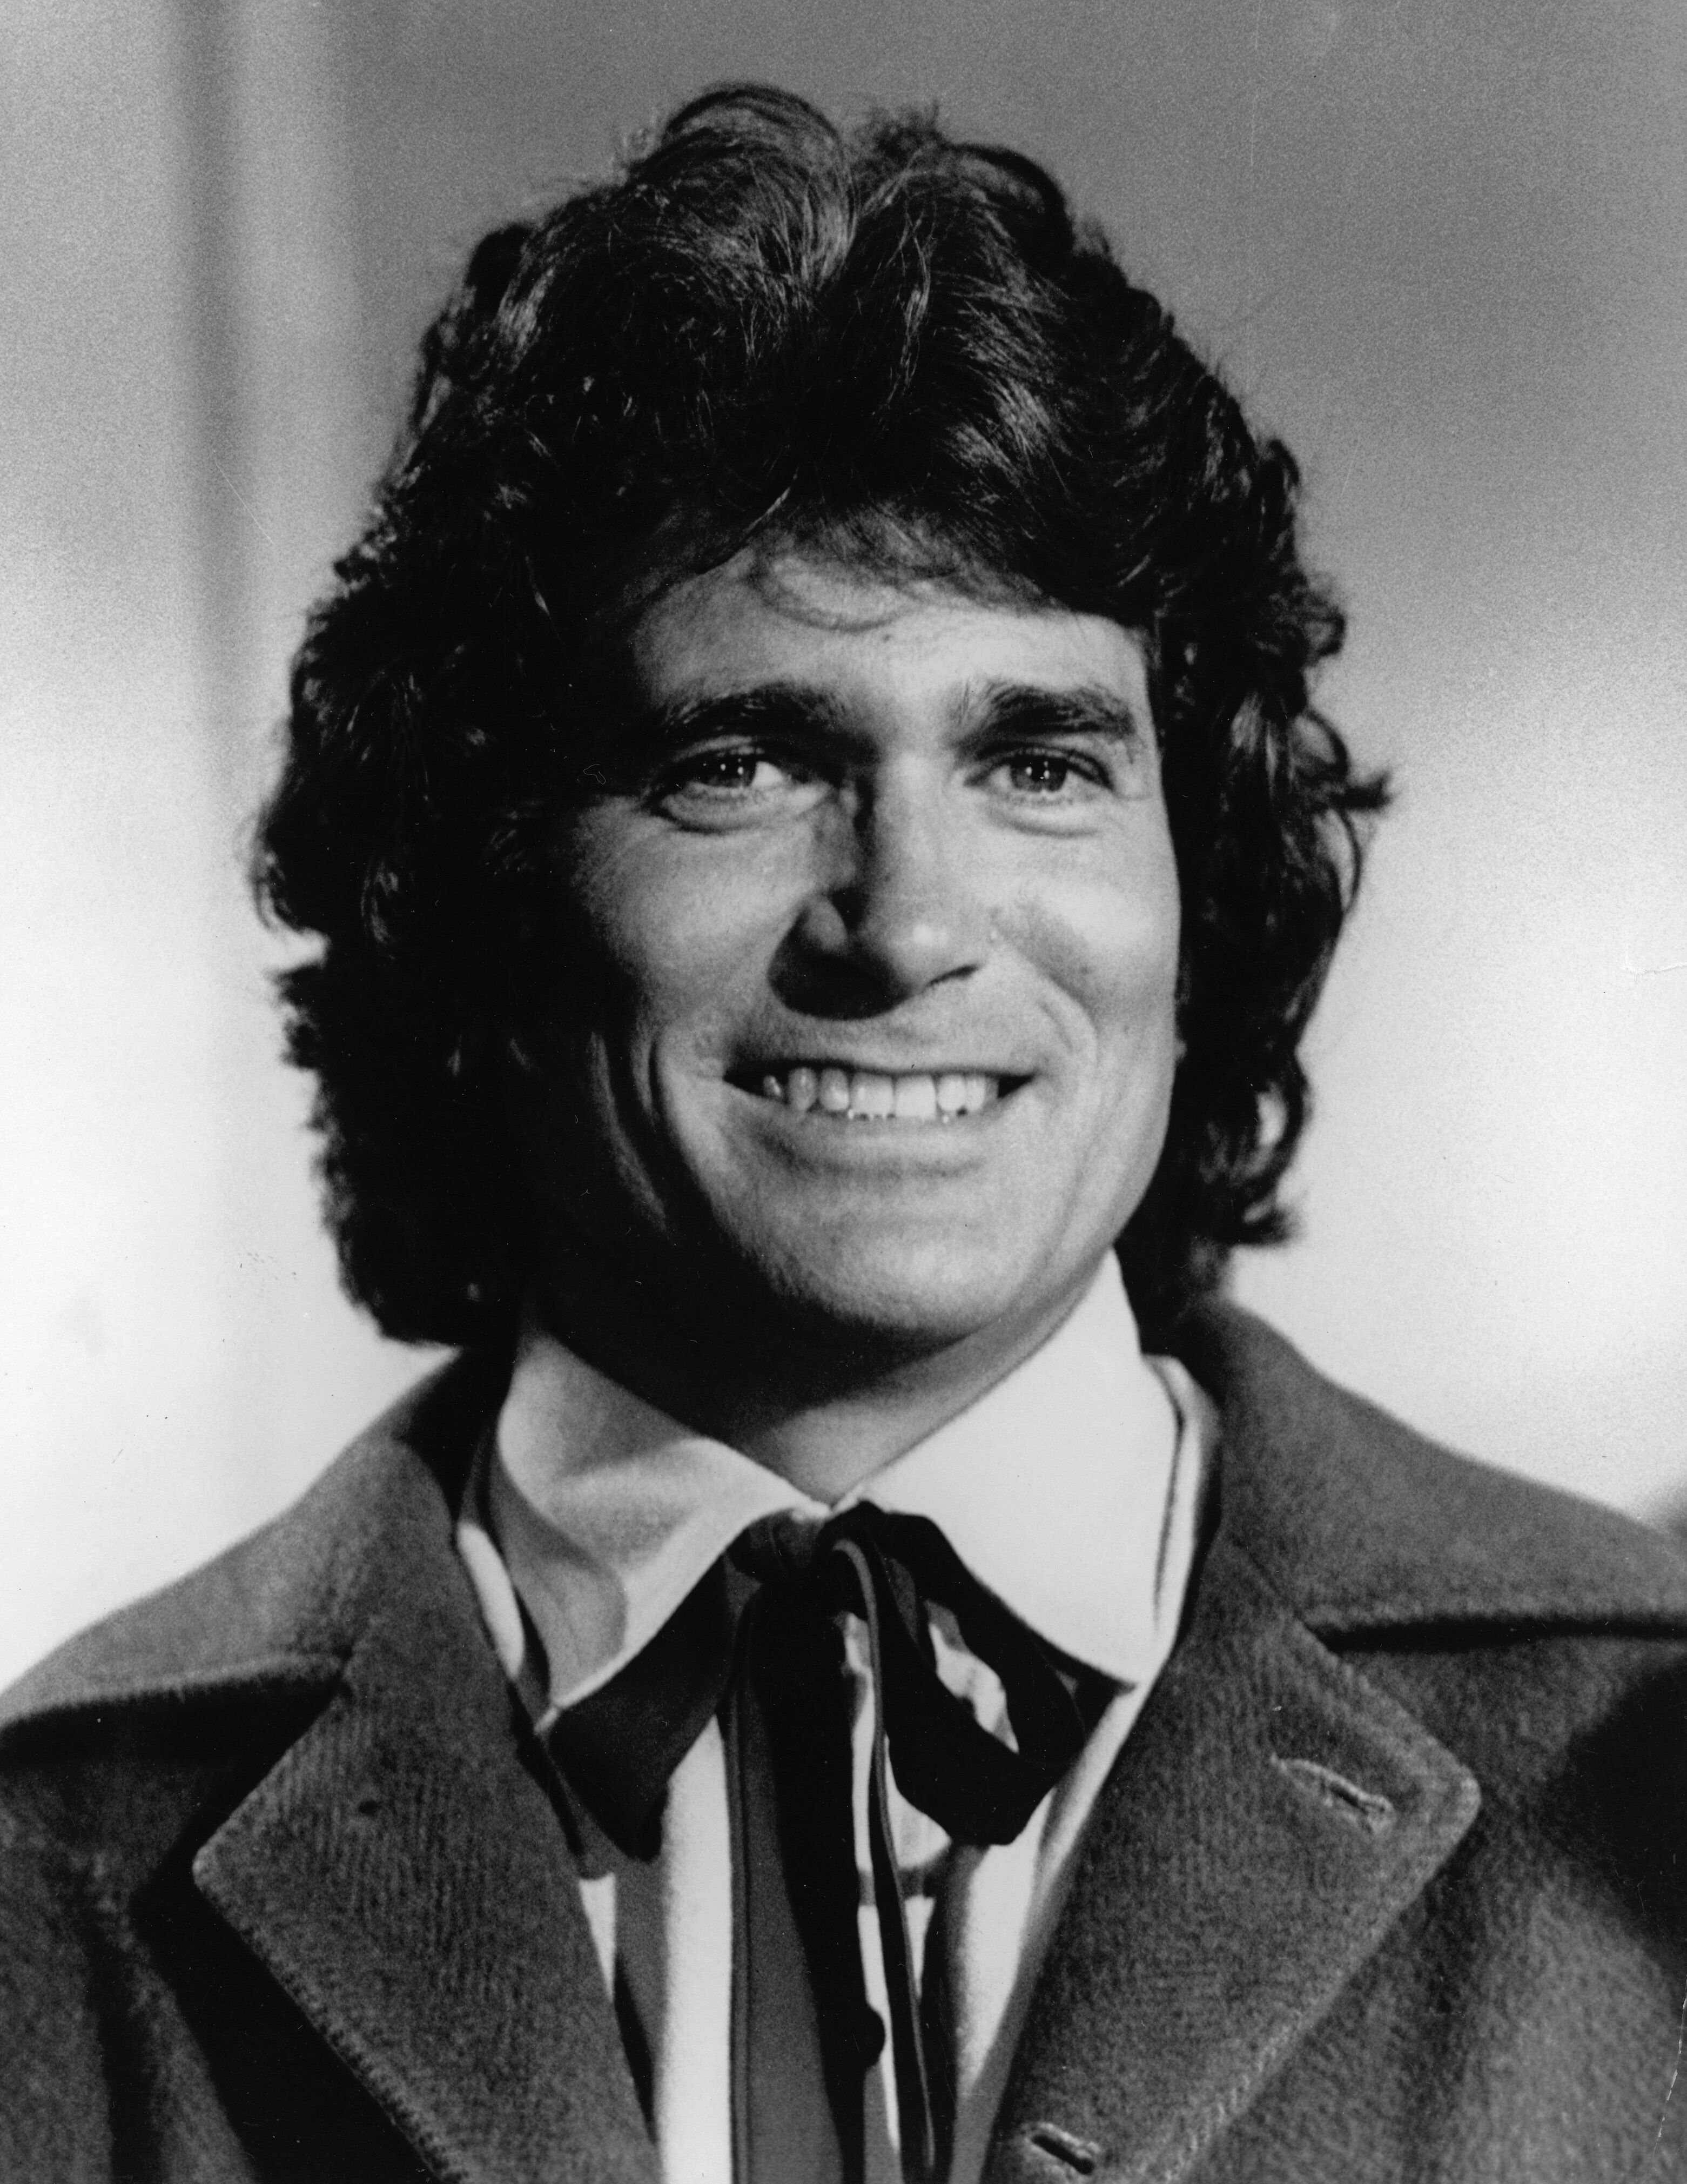 """Michael Landon in costume for """"The Little House on the Prairie.""""   Source: Getty Images"""